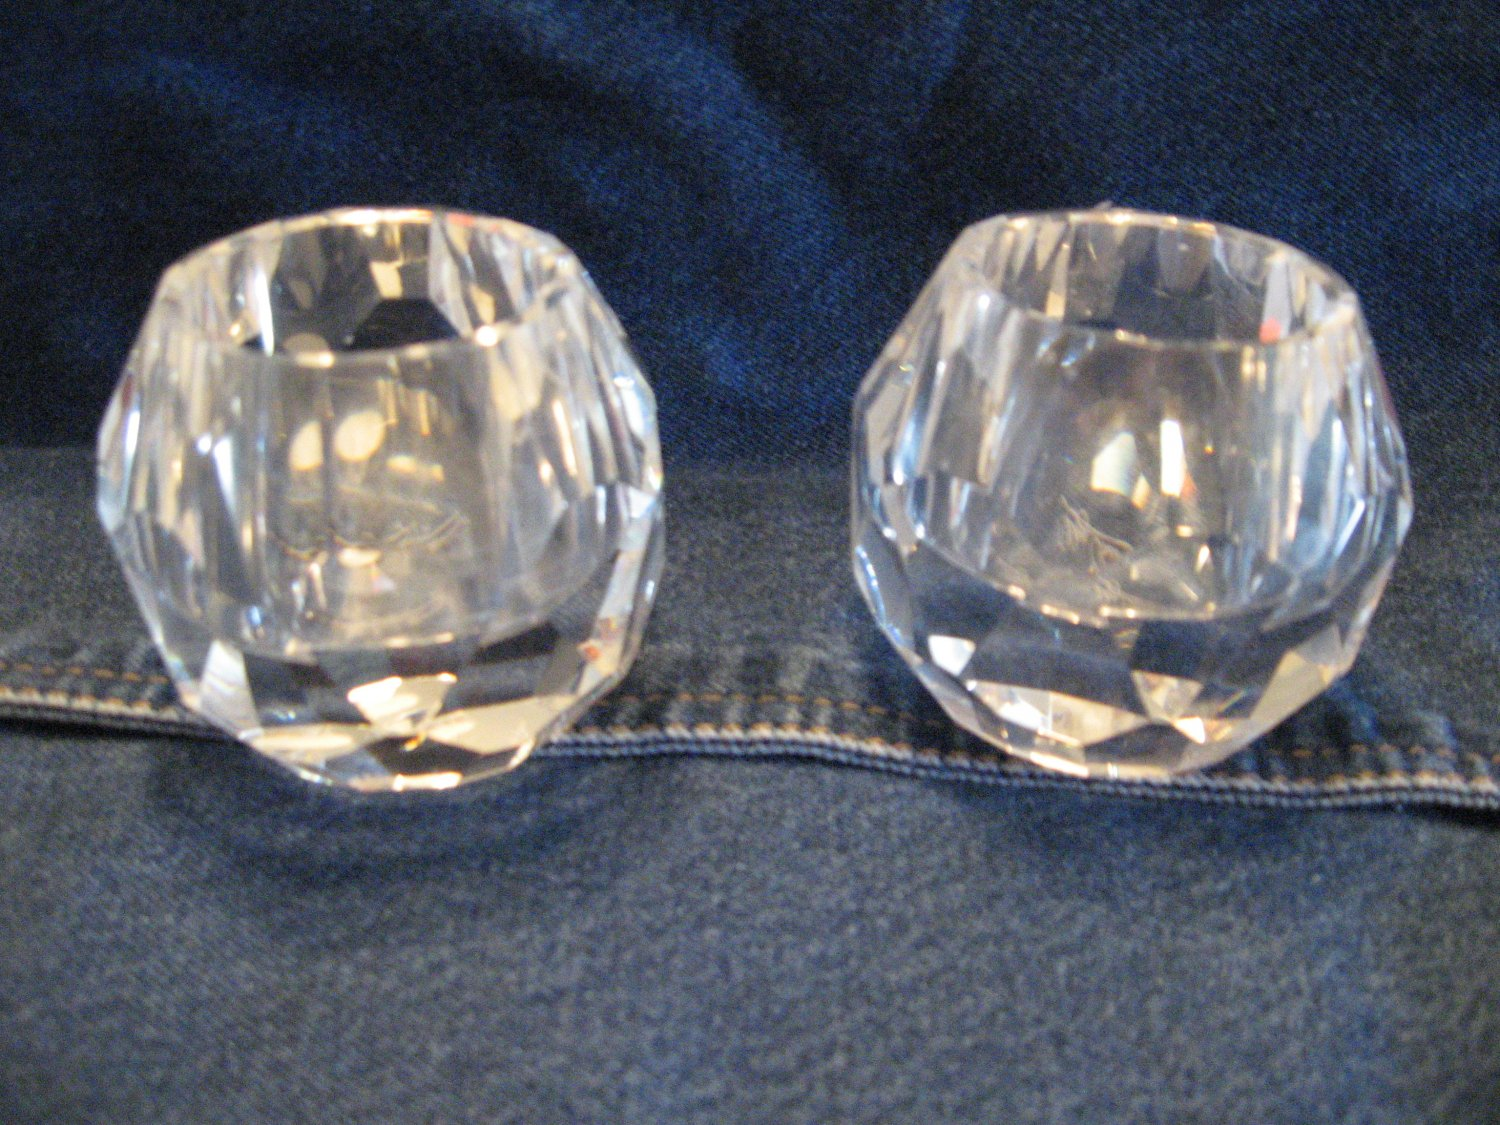 Set (2) of crystal votive candle holders Oleg Cassini